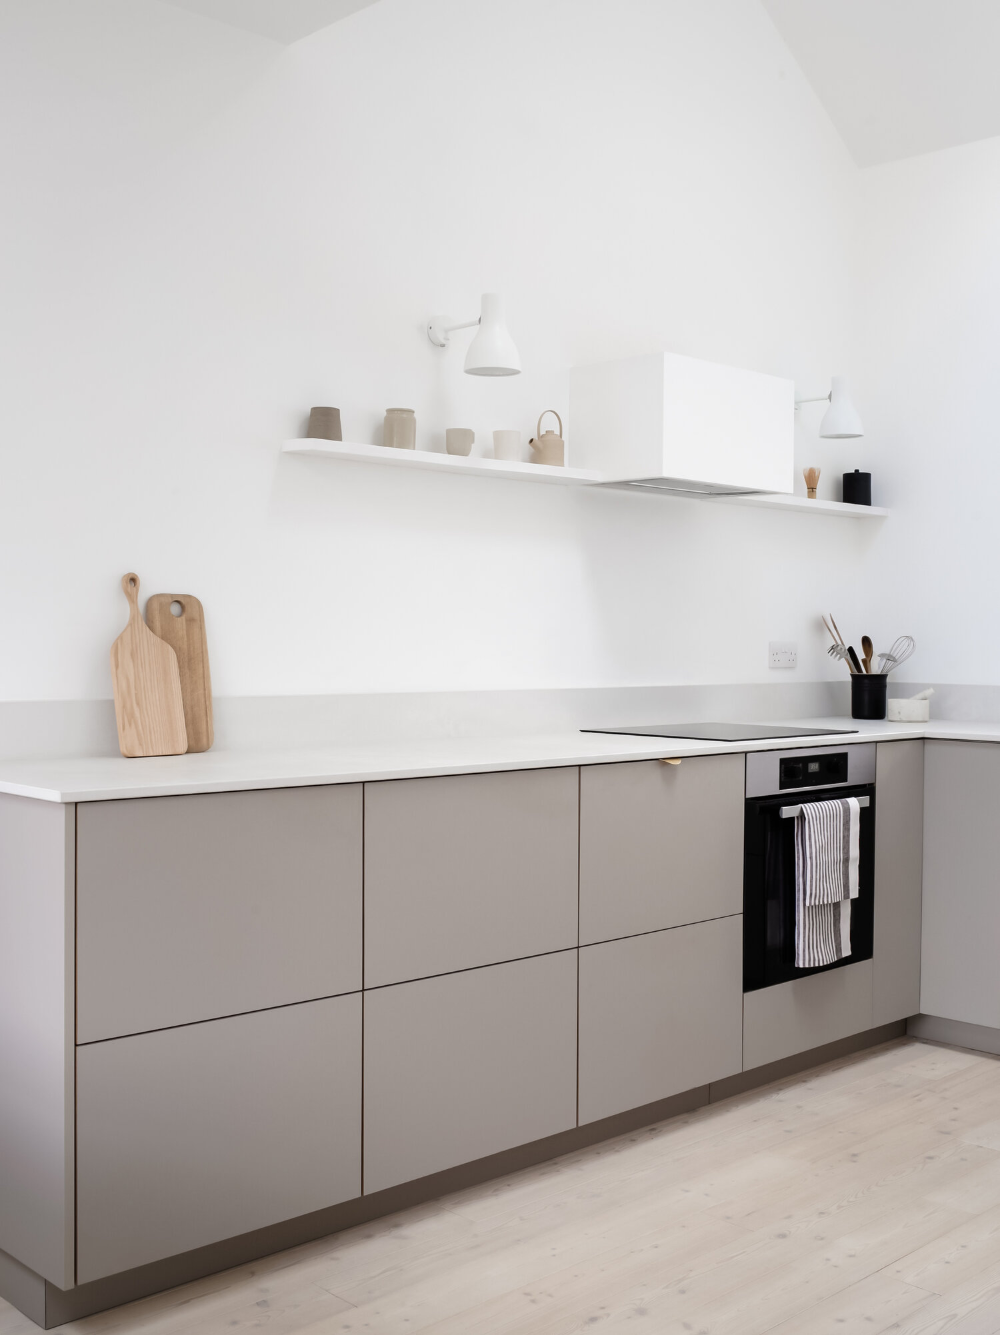 Our contemporary minimalist kitchen extension - the reveal